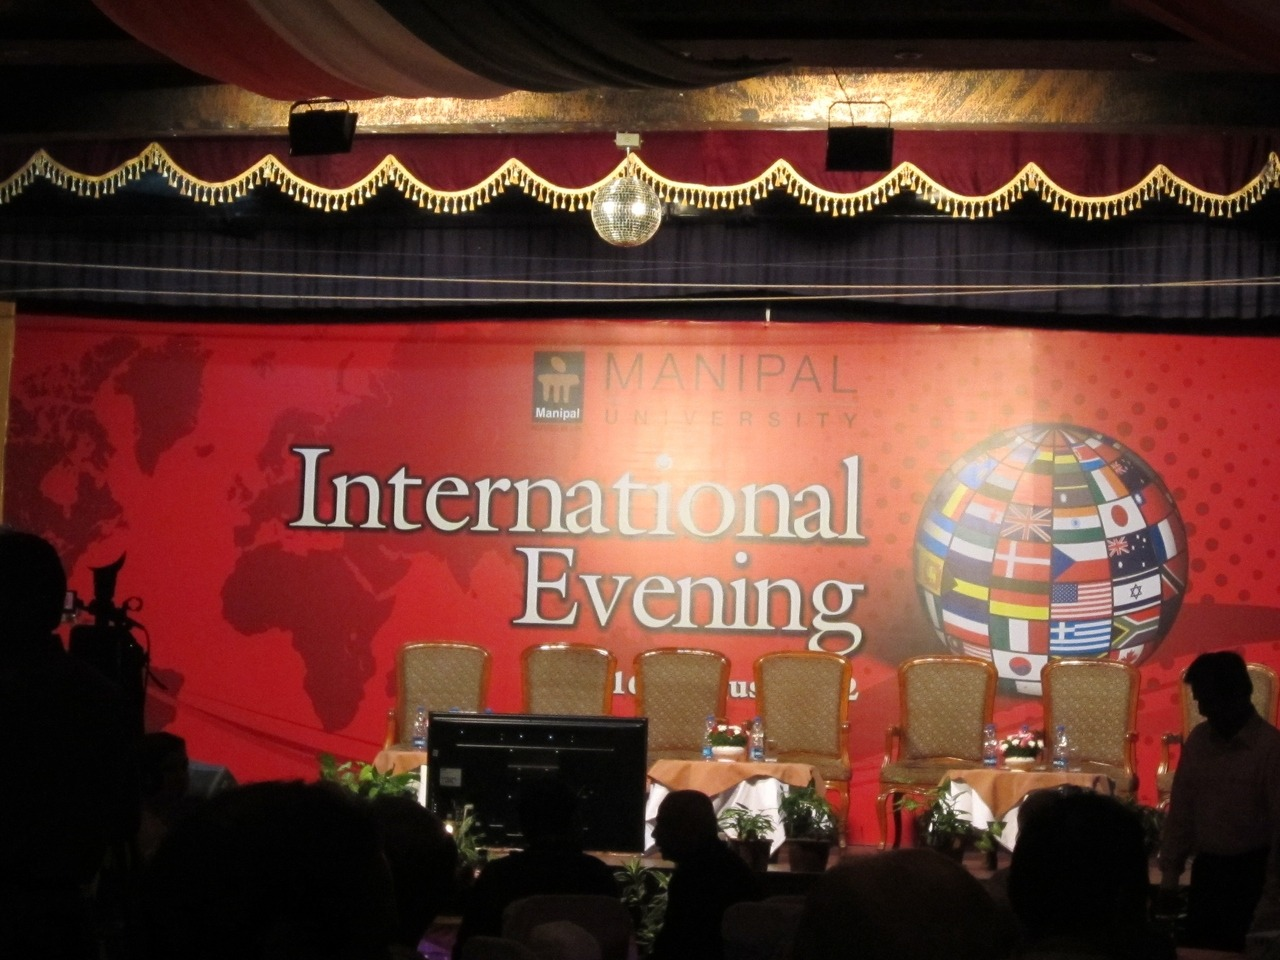 International Evening. Roughly 200 students from other countries come to study at MU. Can't believe that I am one of the 9 American students to come here.